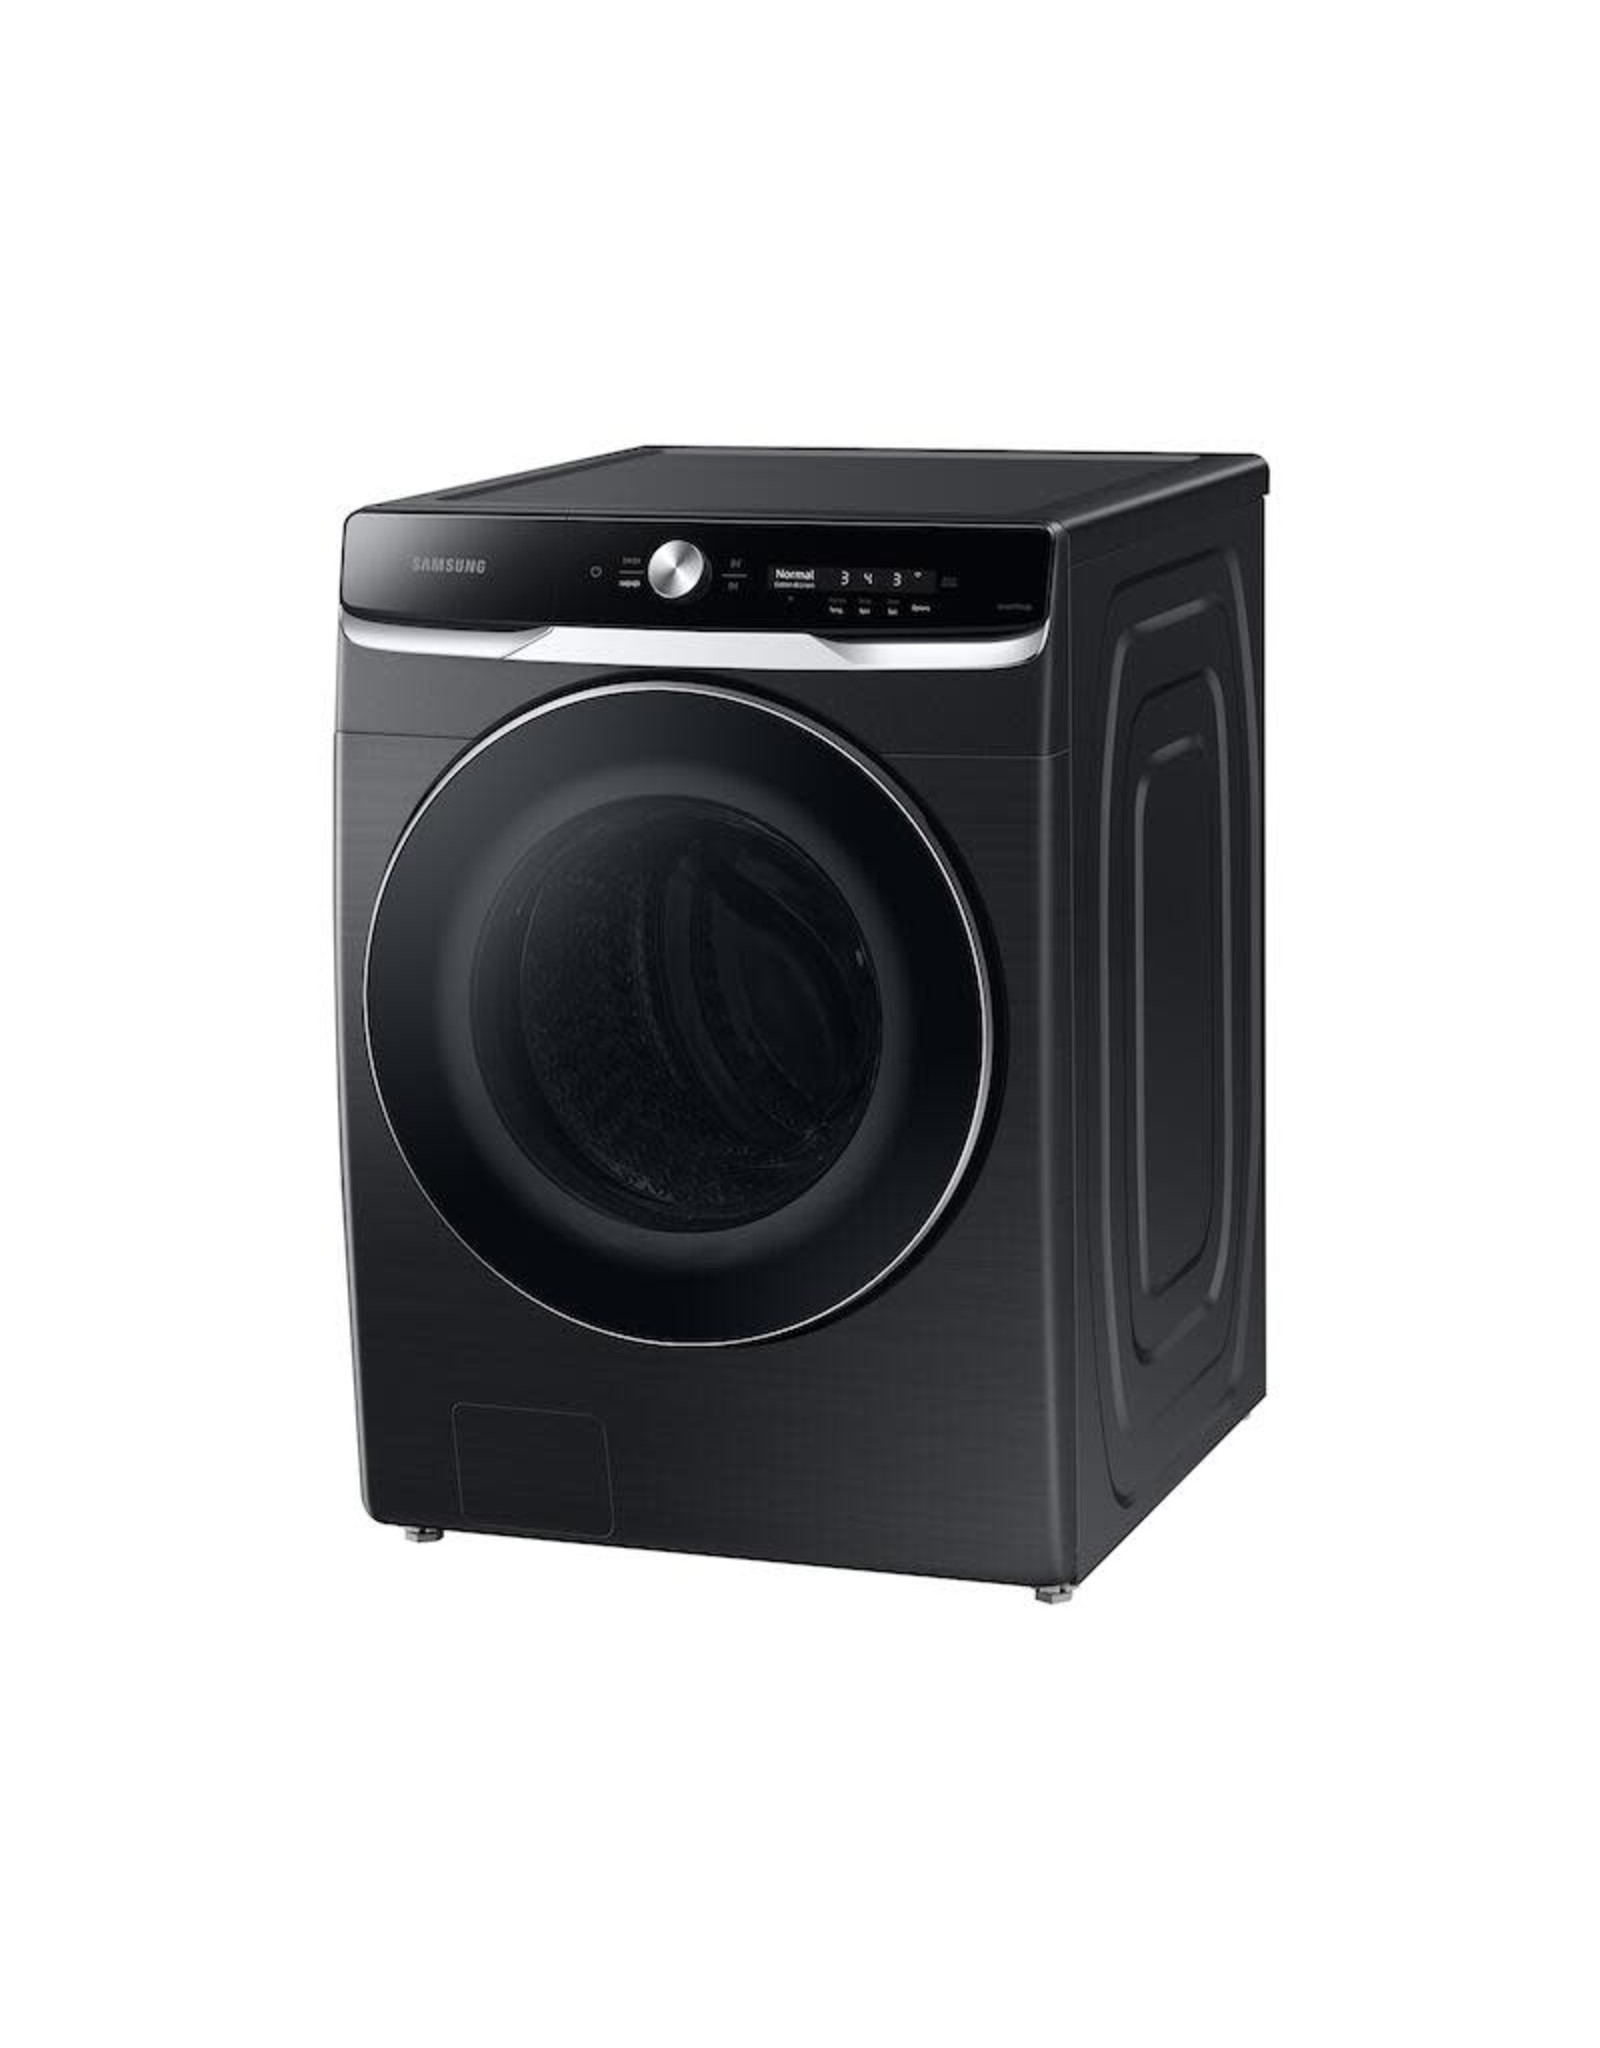 SAMSUNG WF50A8800AV 27 in. Wide 5.0 cu. ft. Extra-Large Brushed Black Front Load Washing Machine with Smart Dial and OptiWash